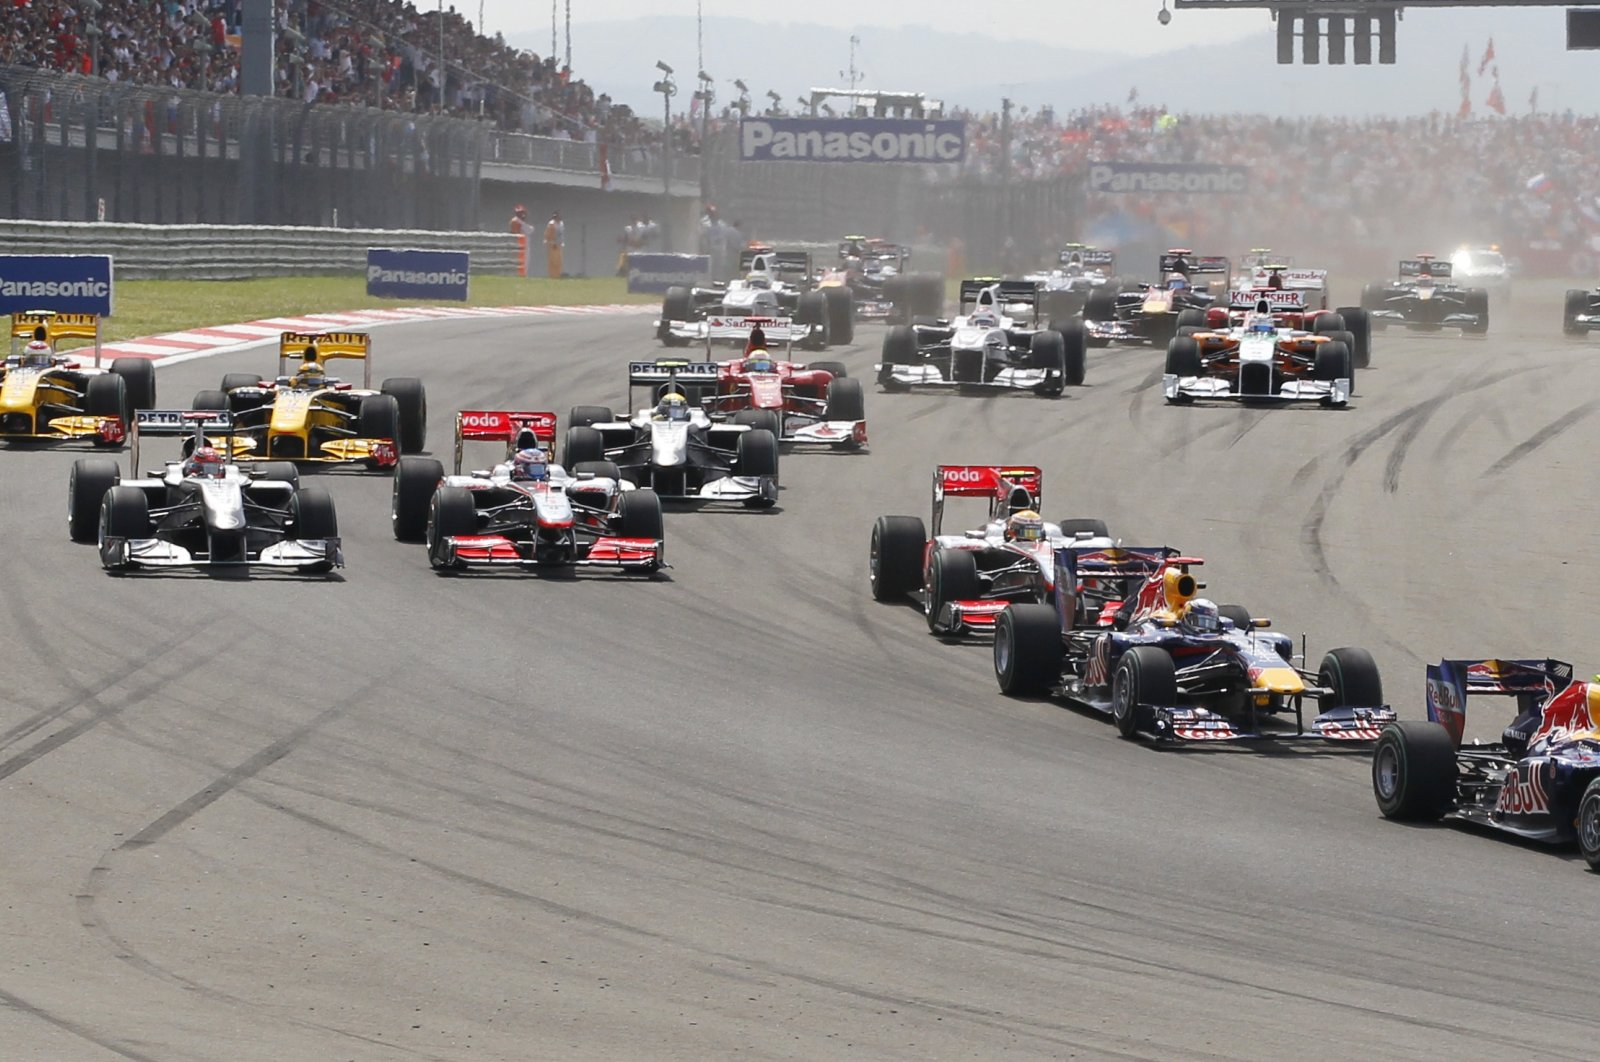 Red Bull driver Mark Webber of Australia leads the field after the start of the Turkish Formula One Grand Prix at the Istanbul Park circuit racetrack, in Istanbul, Turkey, May 30, 2010. (AP Photo)